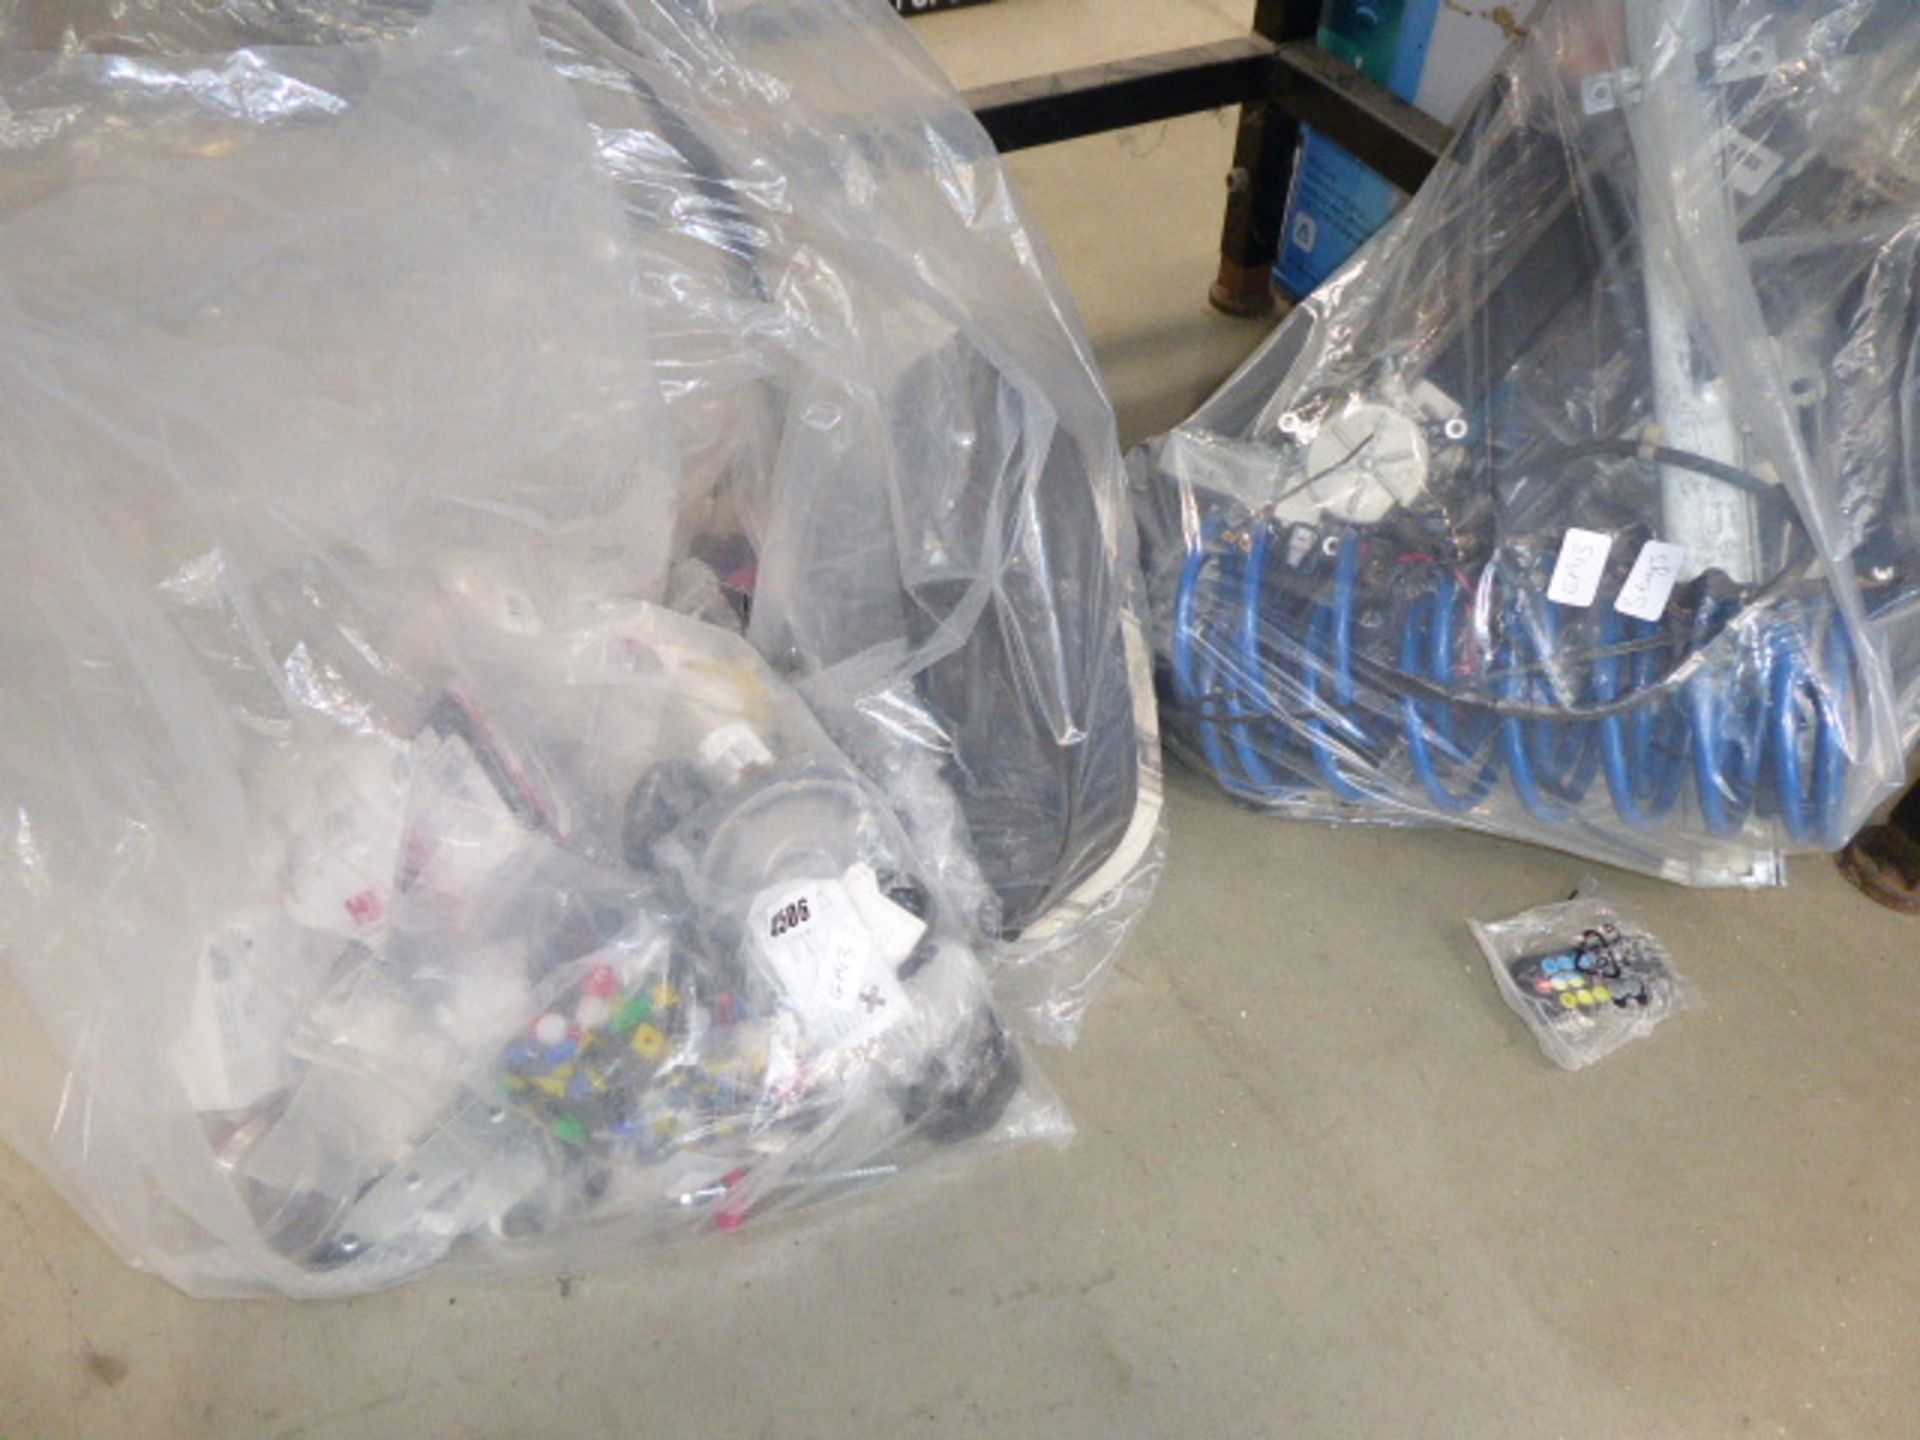 Lot 4506 - 3 bags of car related items including gauges, hoses, winder mechanisms, etc